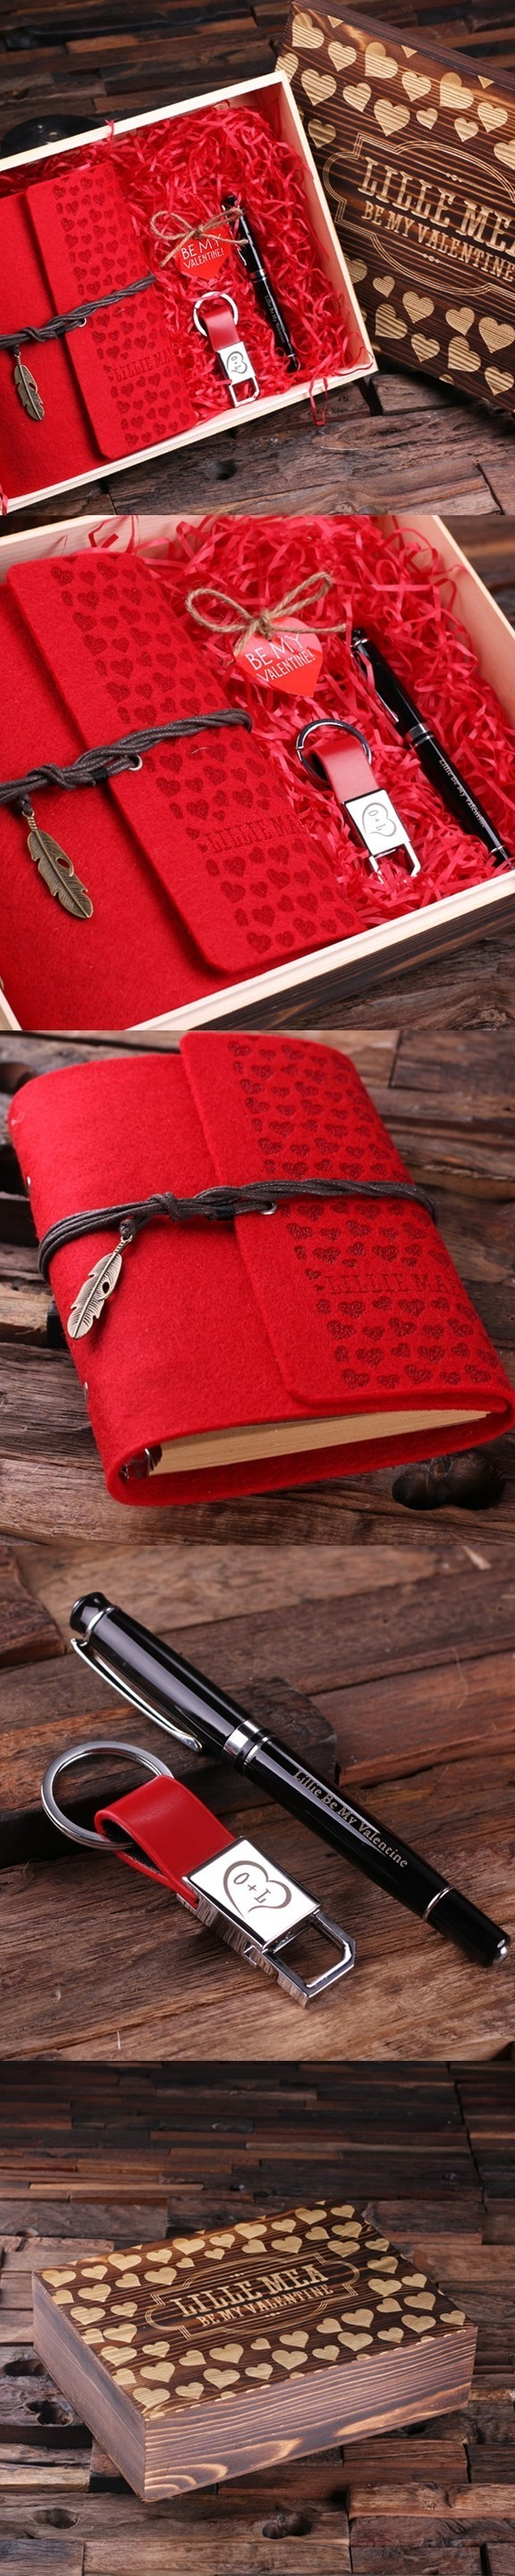 Valentine S Day Gift Set With Journal Pen Keychain In Wood Gift